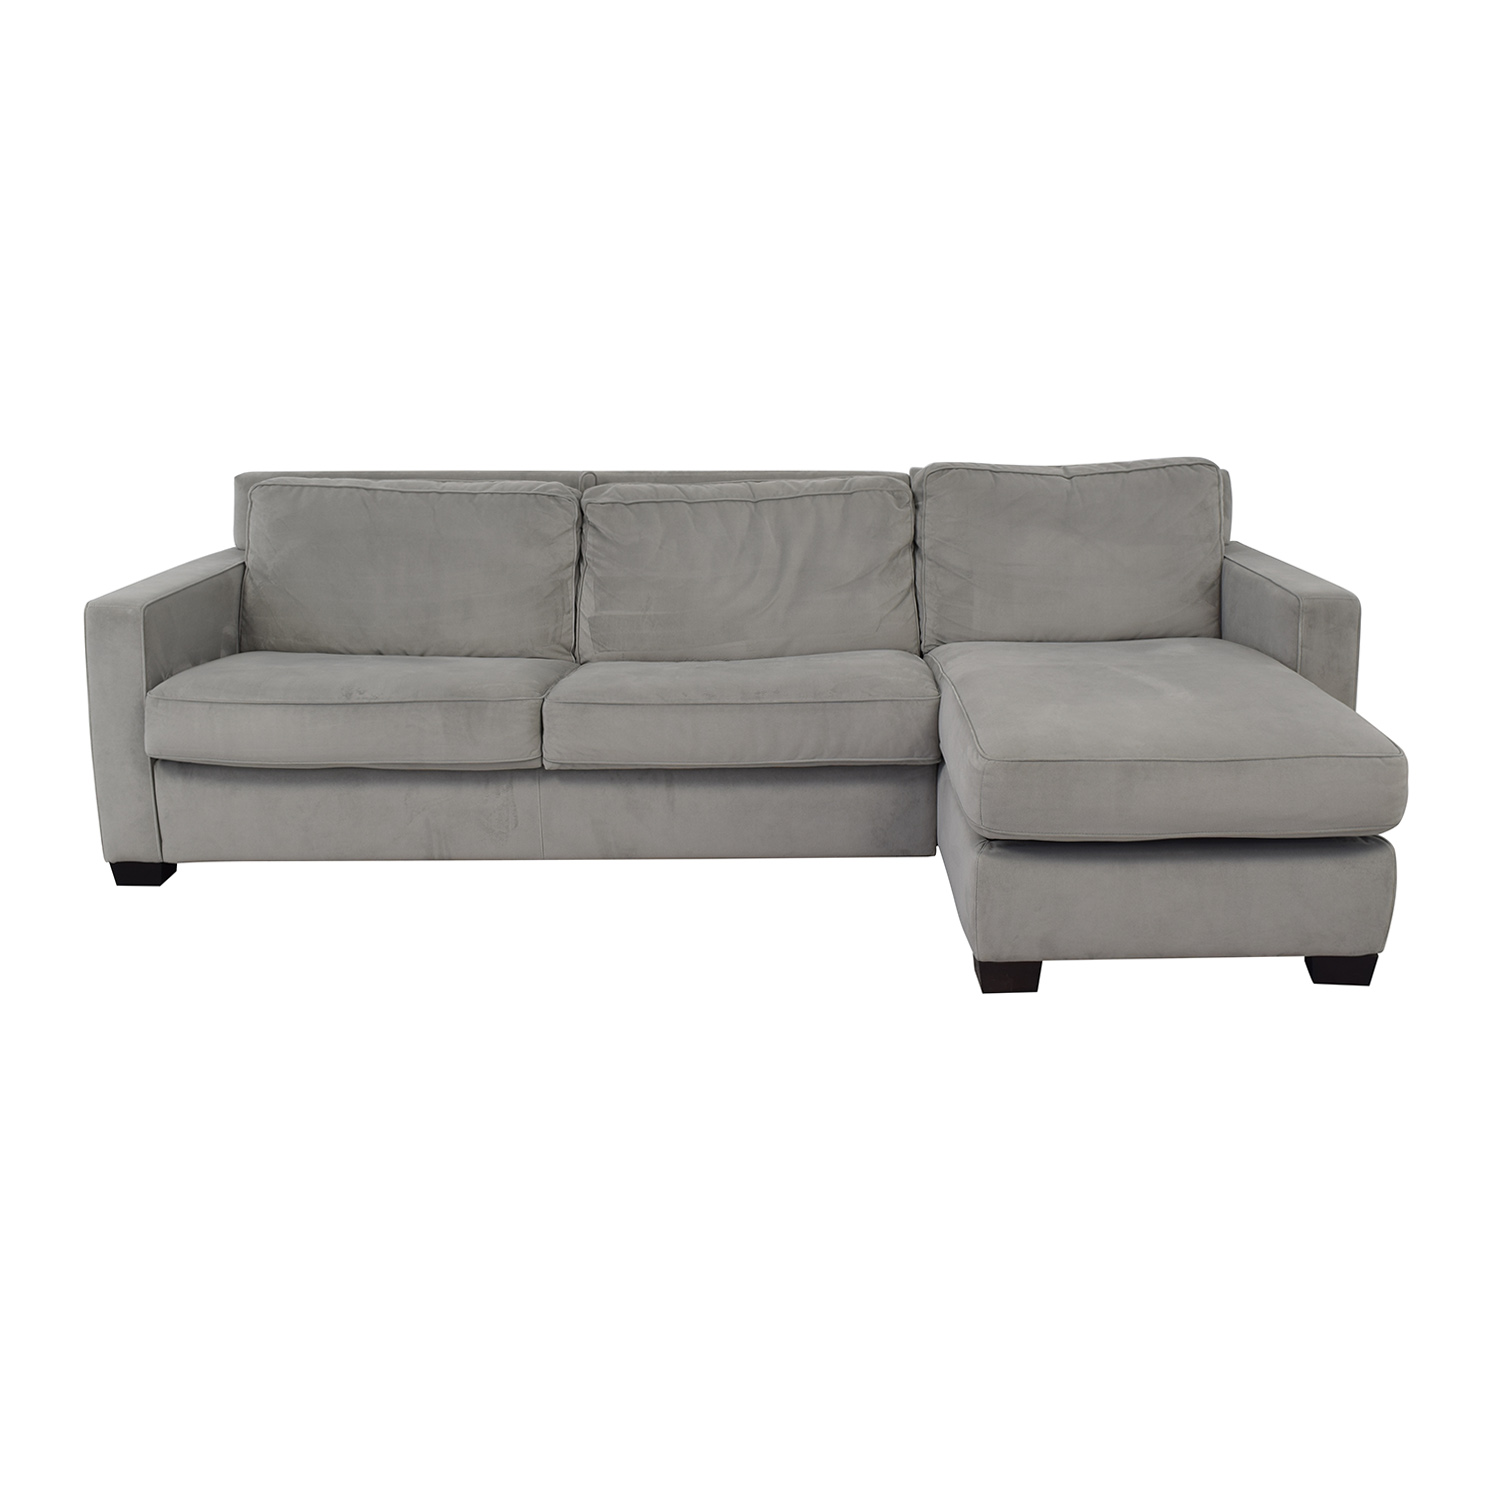 West Elm West Elm Henry Sectional Sofa Bed with Storage Sectionals